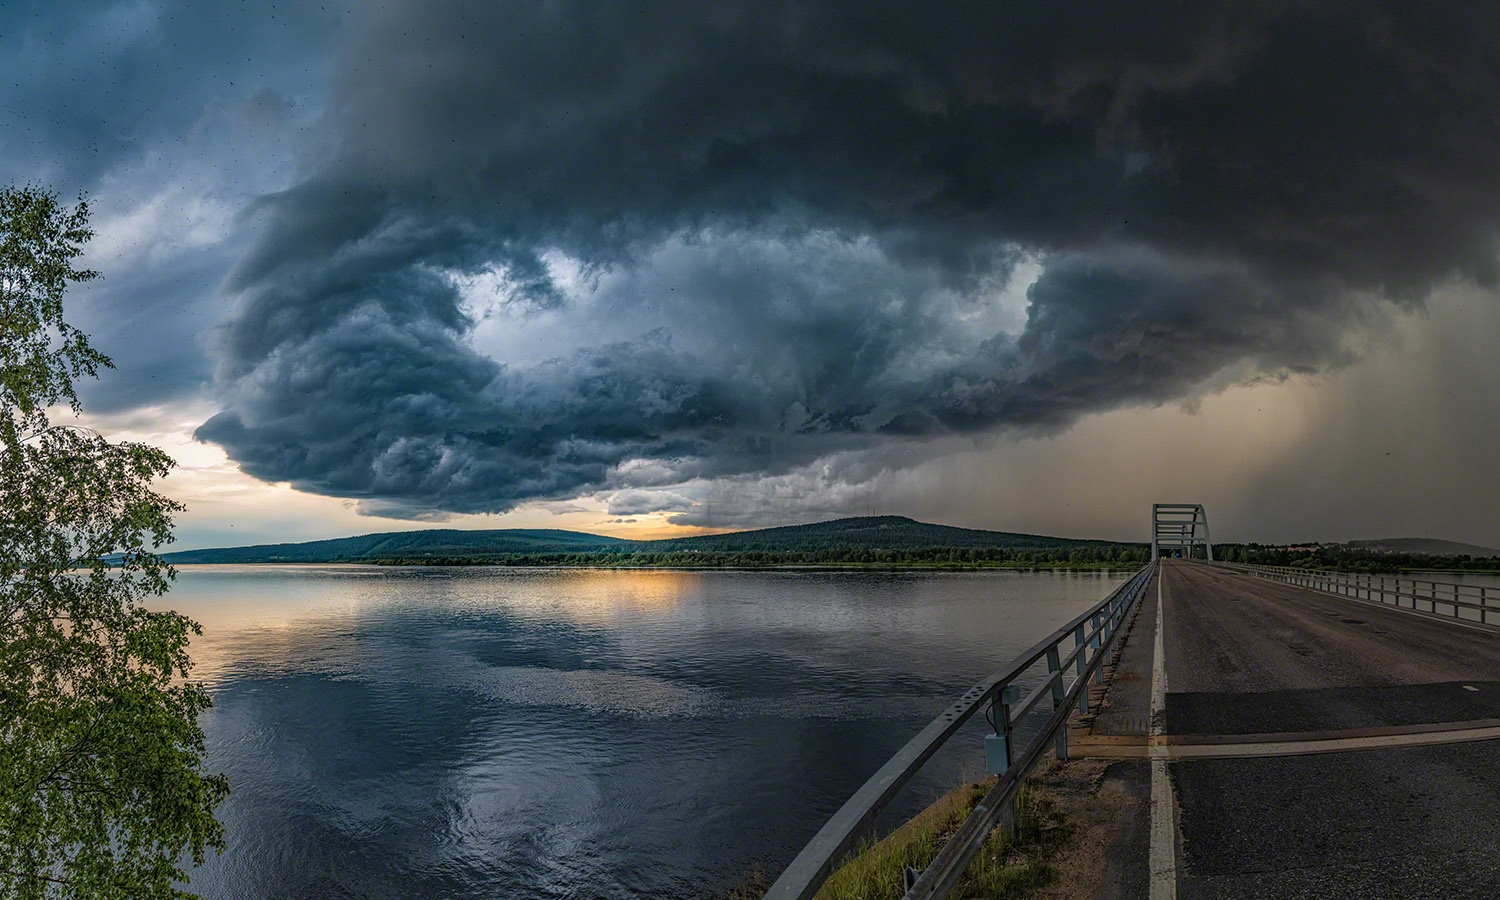 Thunderstorm cloud in Lapland